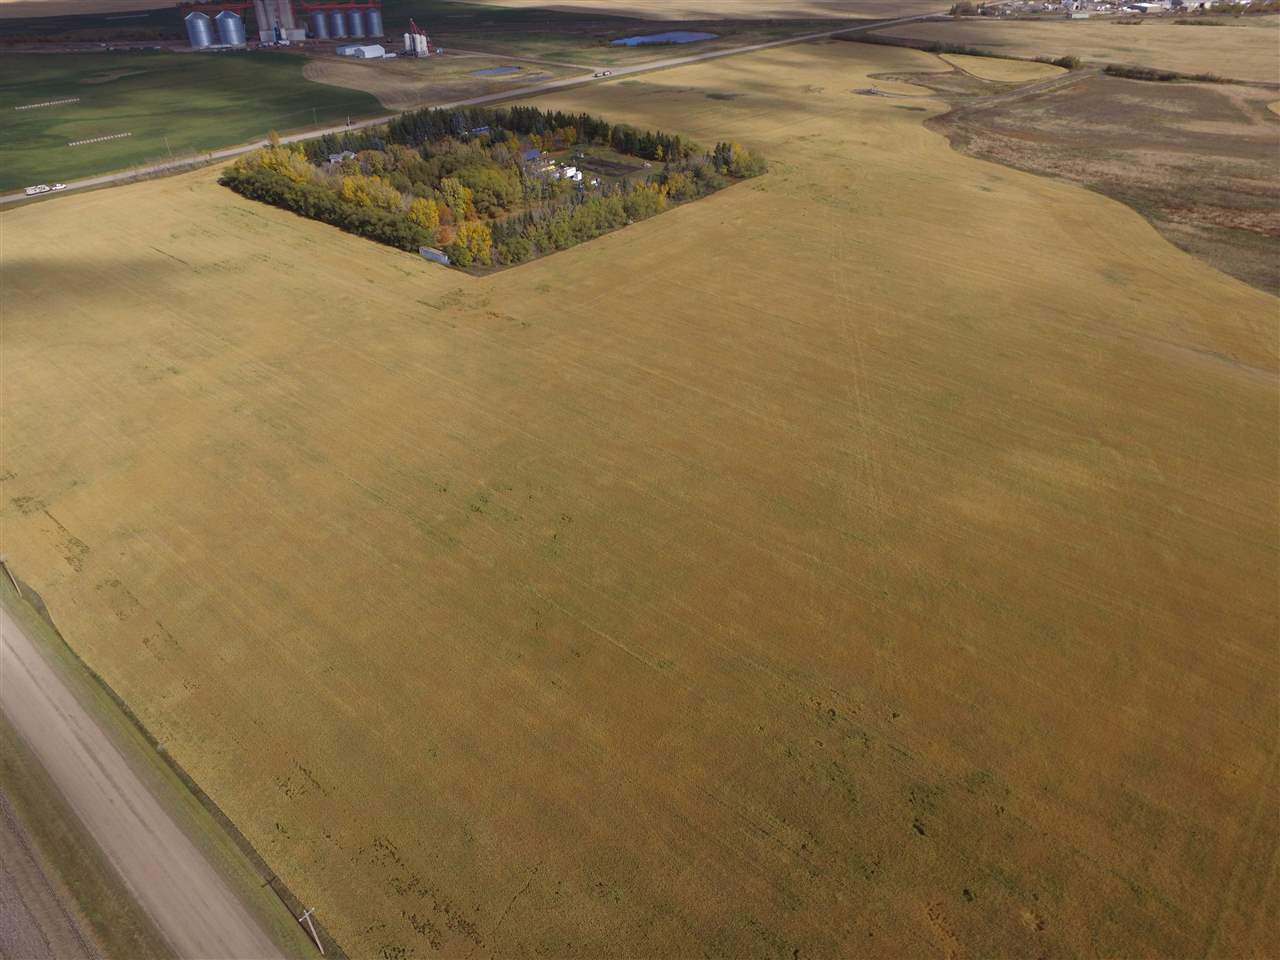 Main Photo: HWY 642 RR 255: Rural Sturgeon County Rural Land/Vacant Lot for sale : MLS®# E4125481